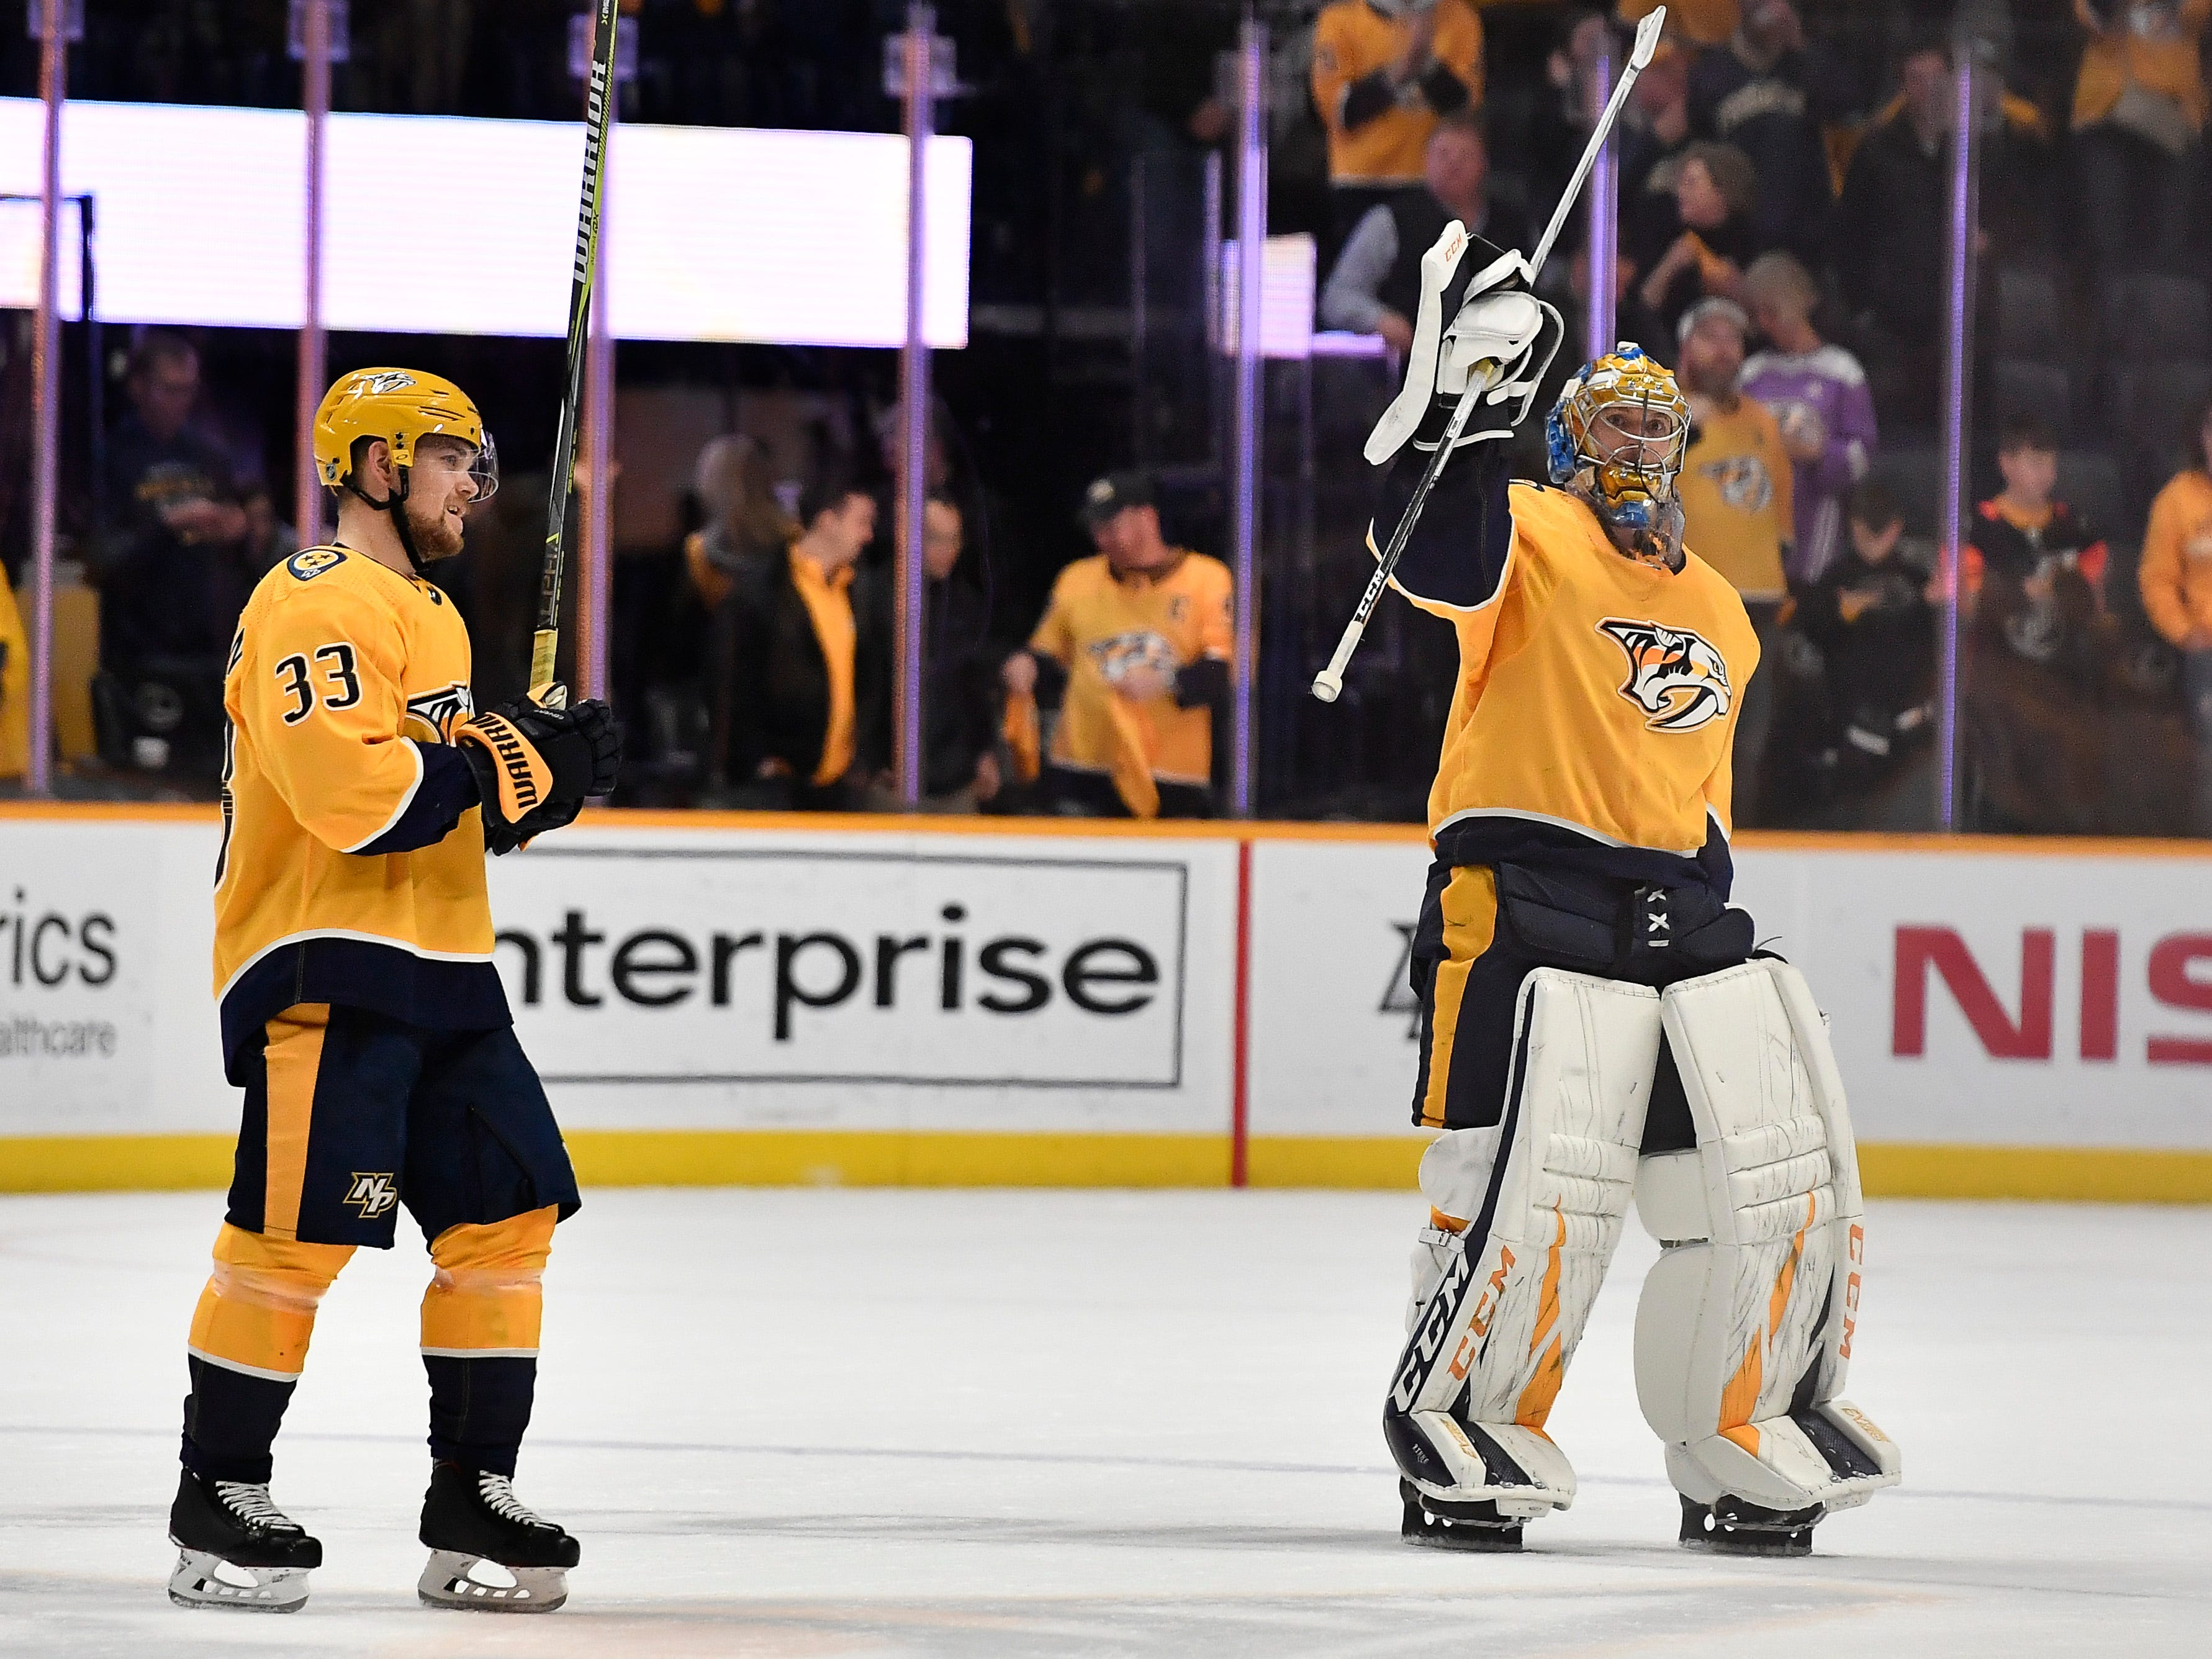 Predators right wing Viktor Arvidsson (33) and goaltender Pekka Rinne (35) wave to the crowd after their 2 to 1 victory against the Kings at Bridgestone Arena Thursday, Feb. 21, 2019 in Nashville, Tenn.